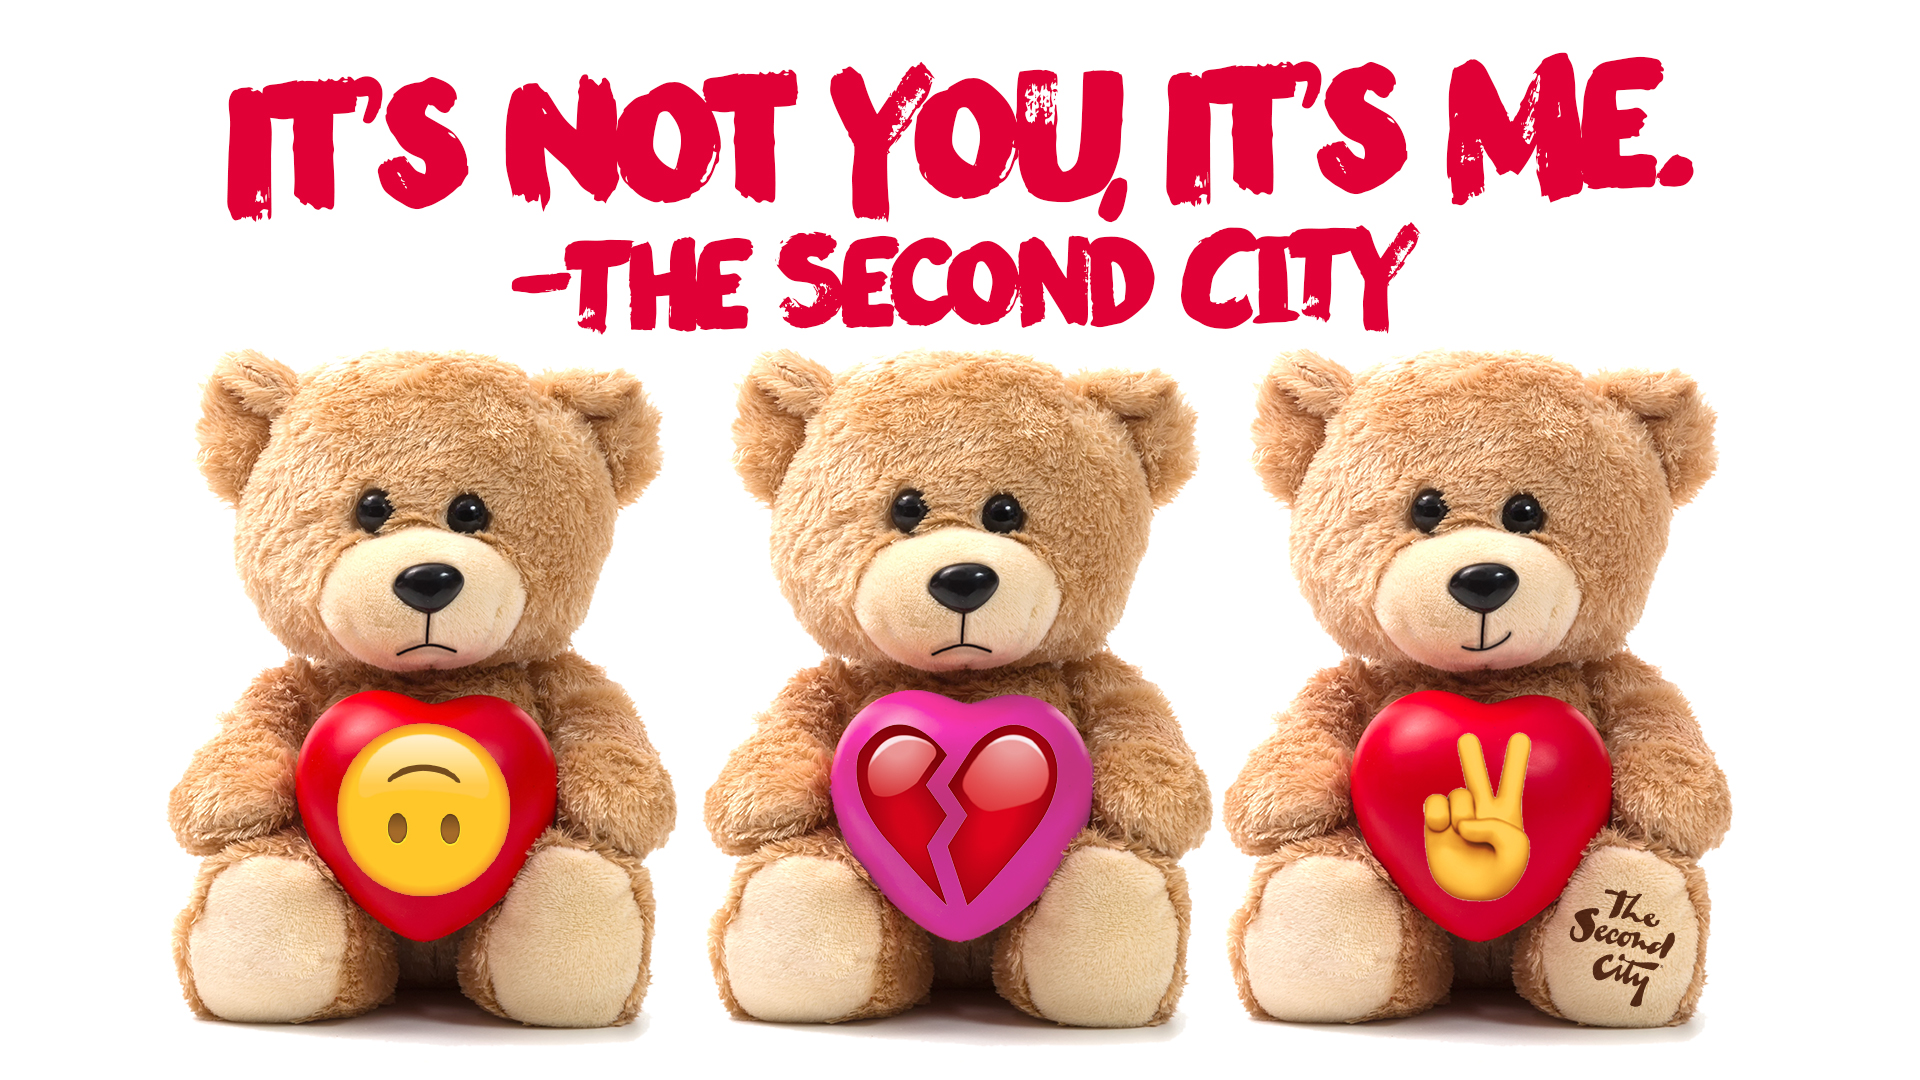 It's Not You, It's Me. -The Second City